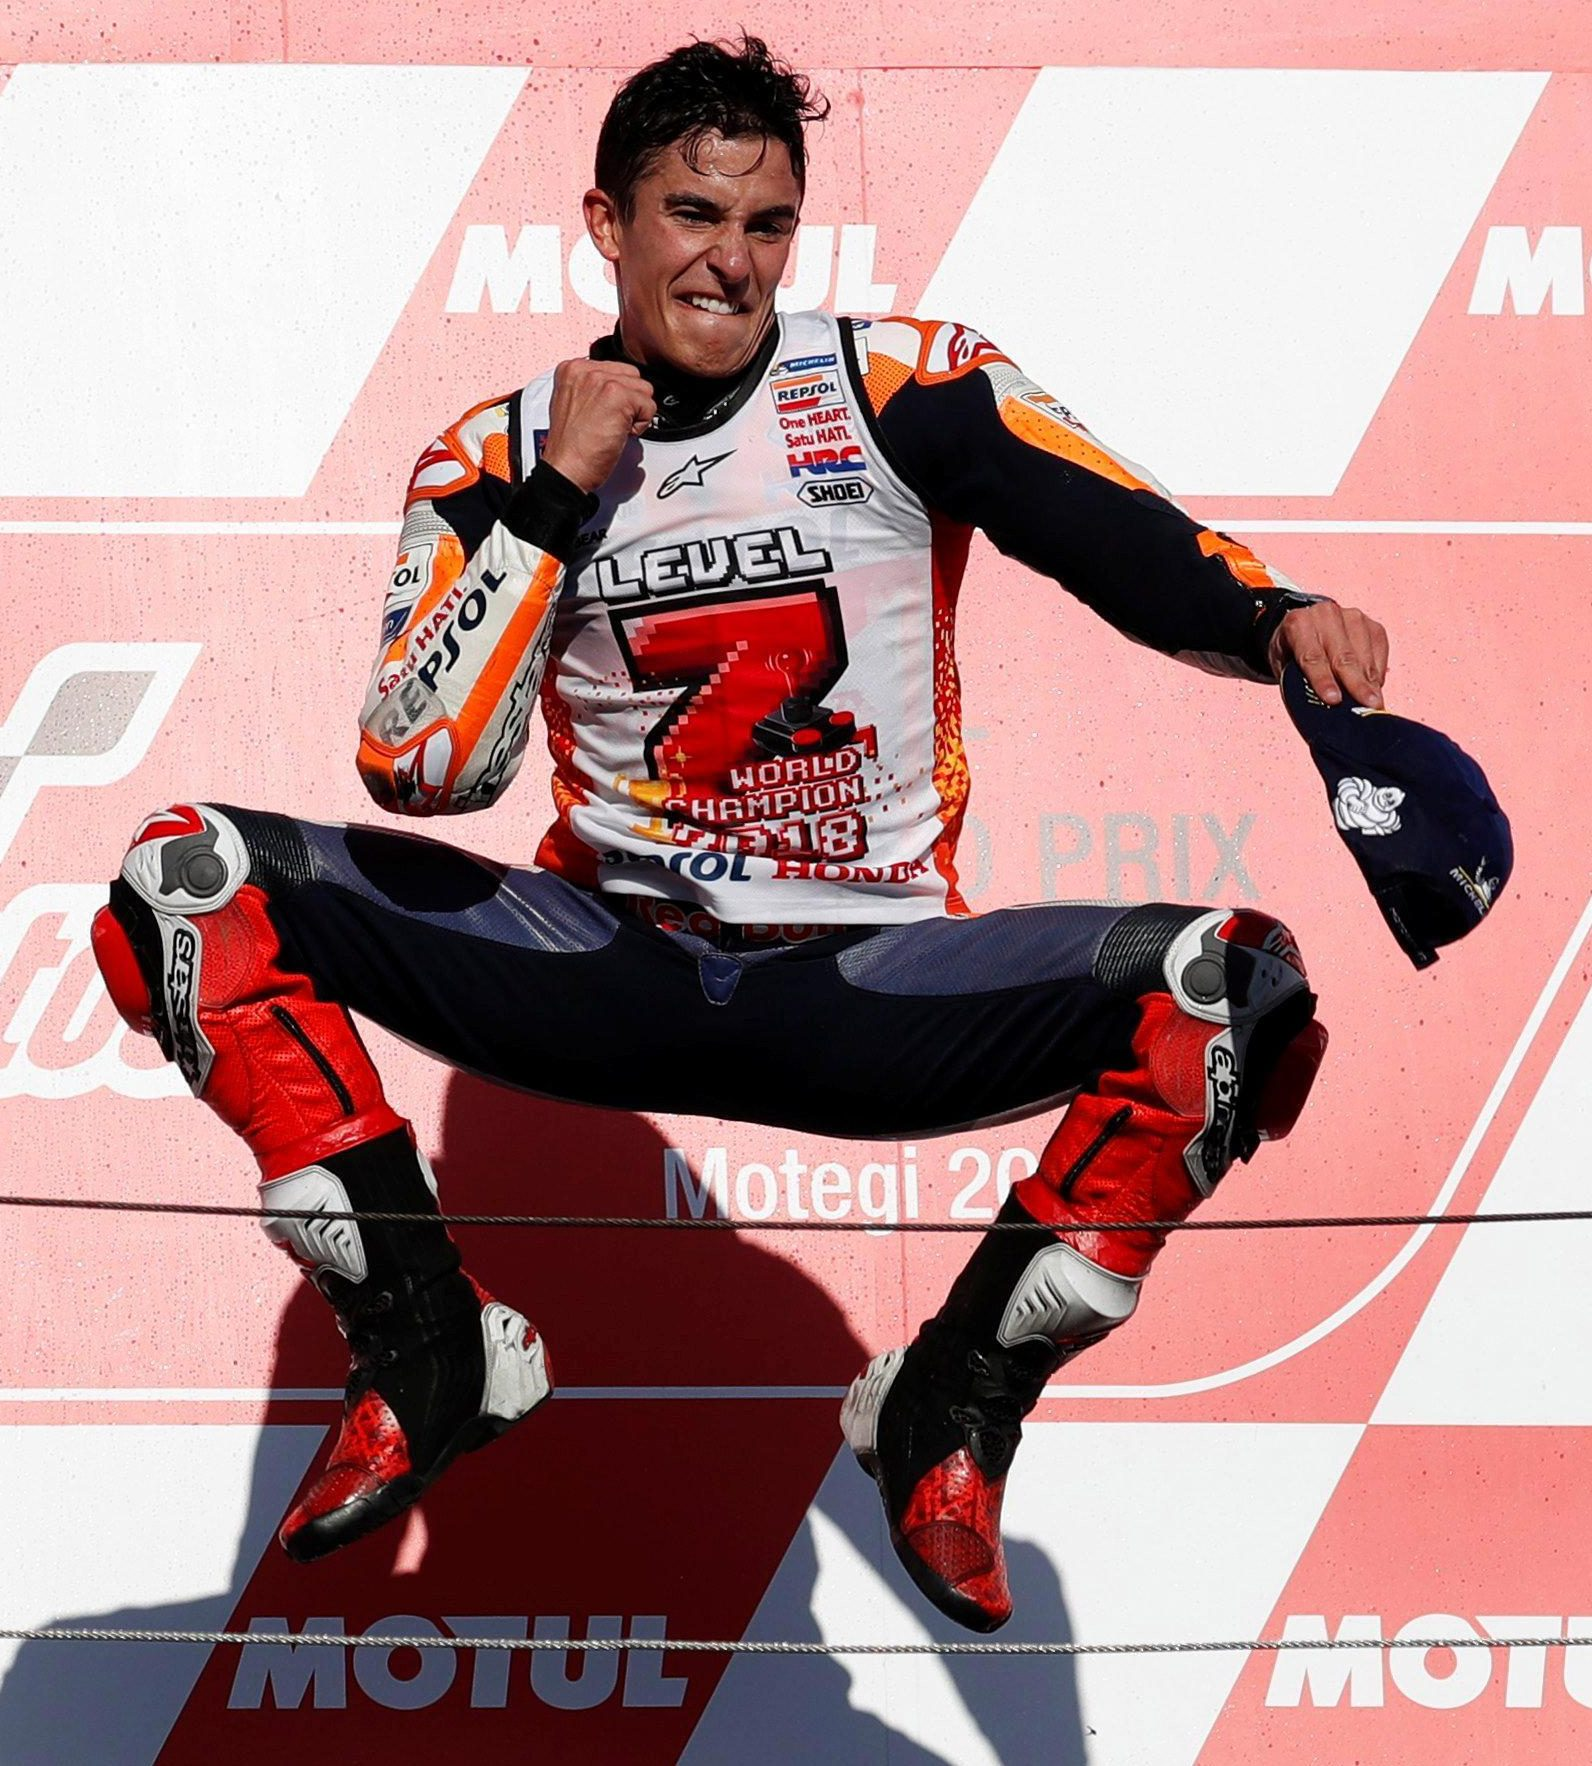 Marc Marquez celebrated his fifth world title after victory in Japan